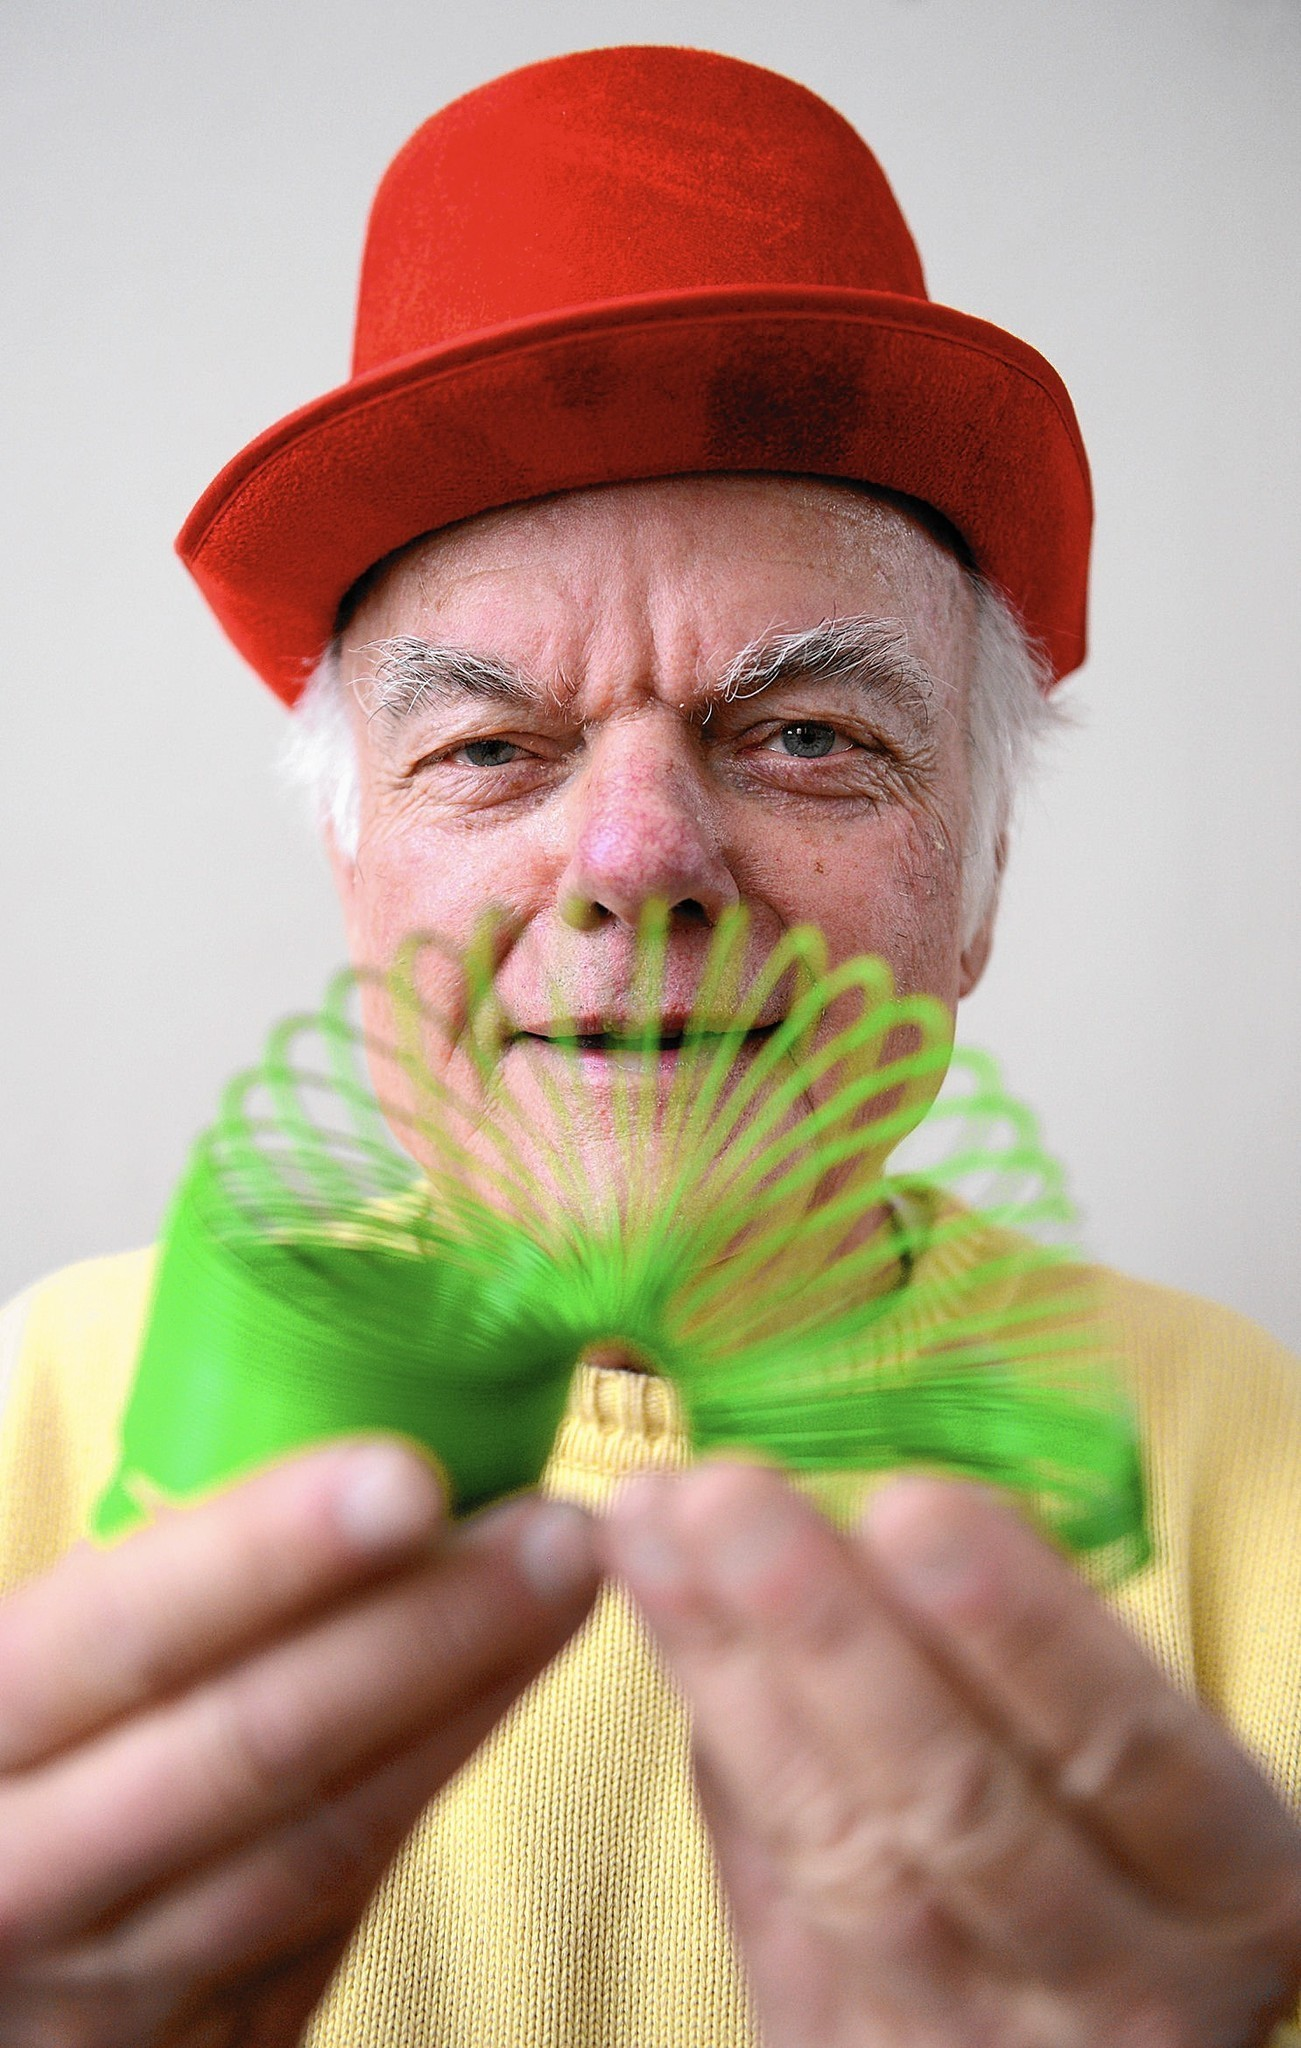 The Slinky & Other Toys @ Abington Community Library